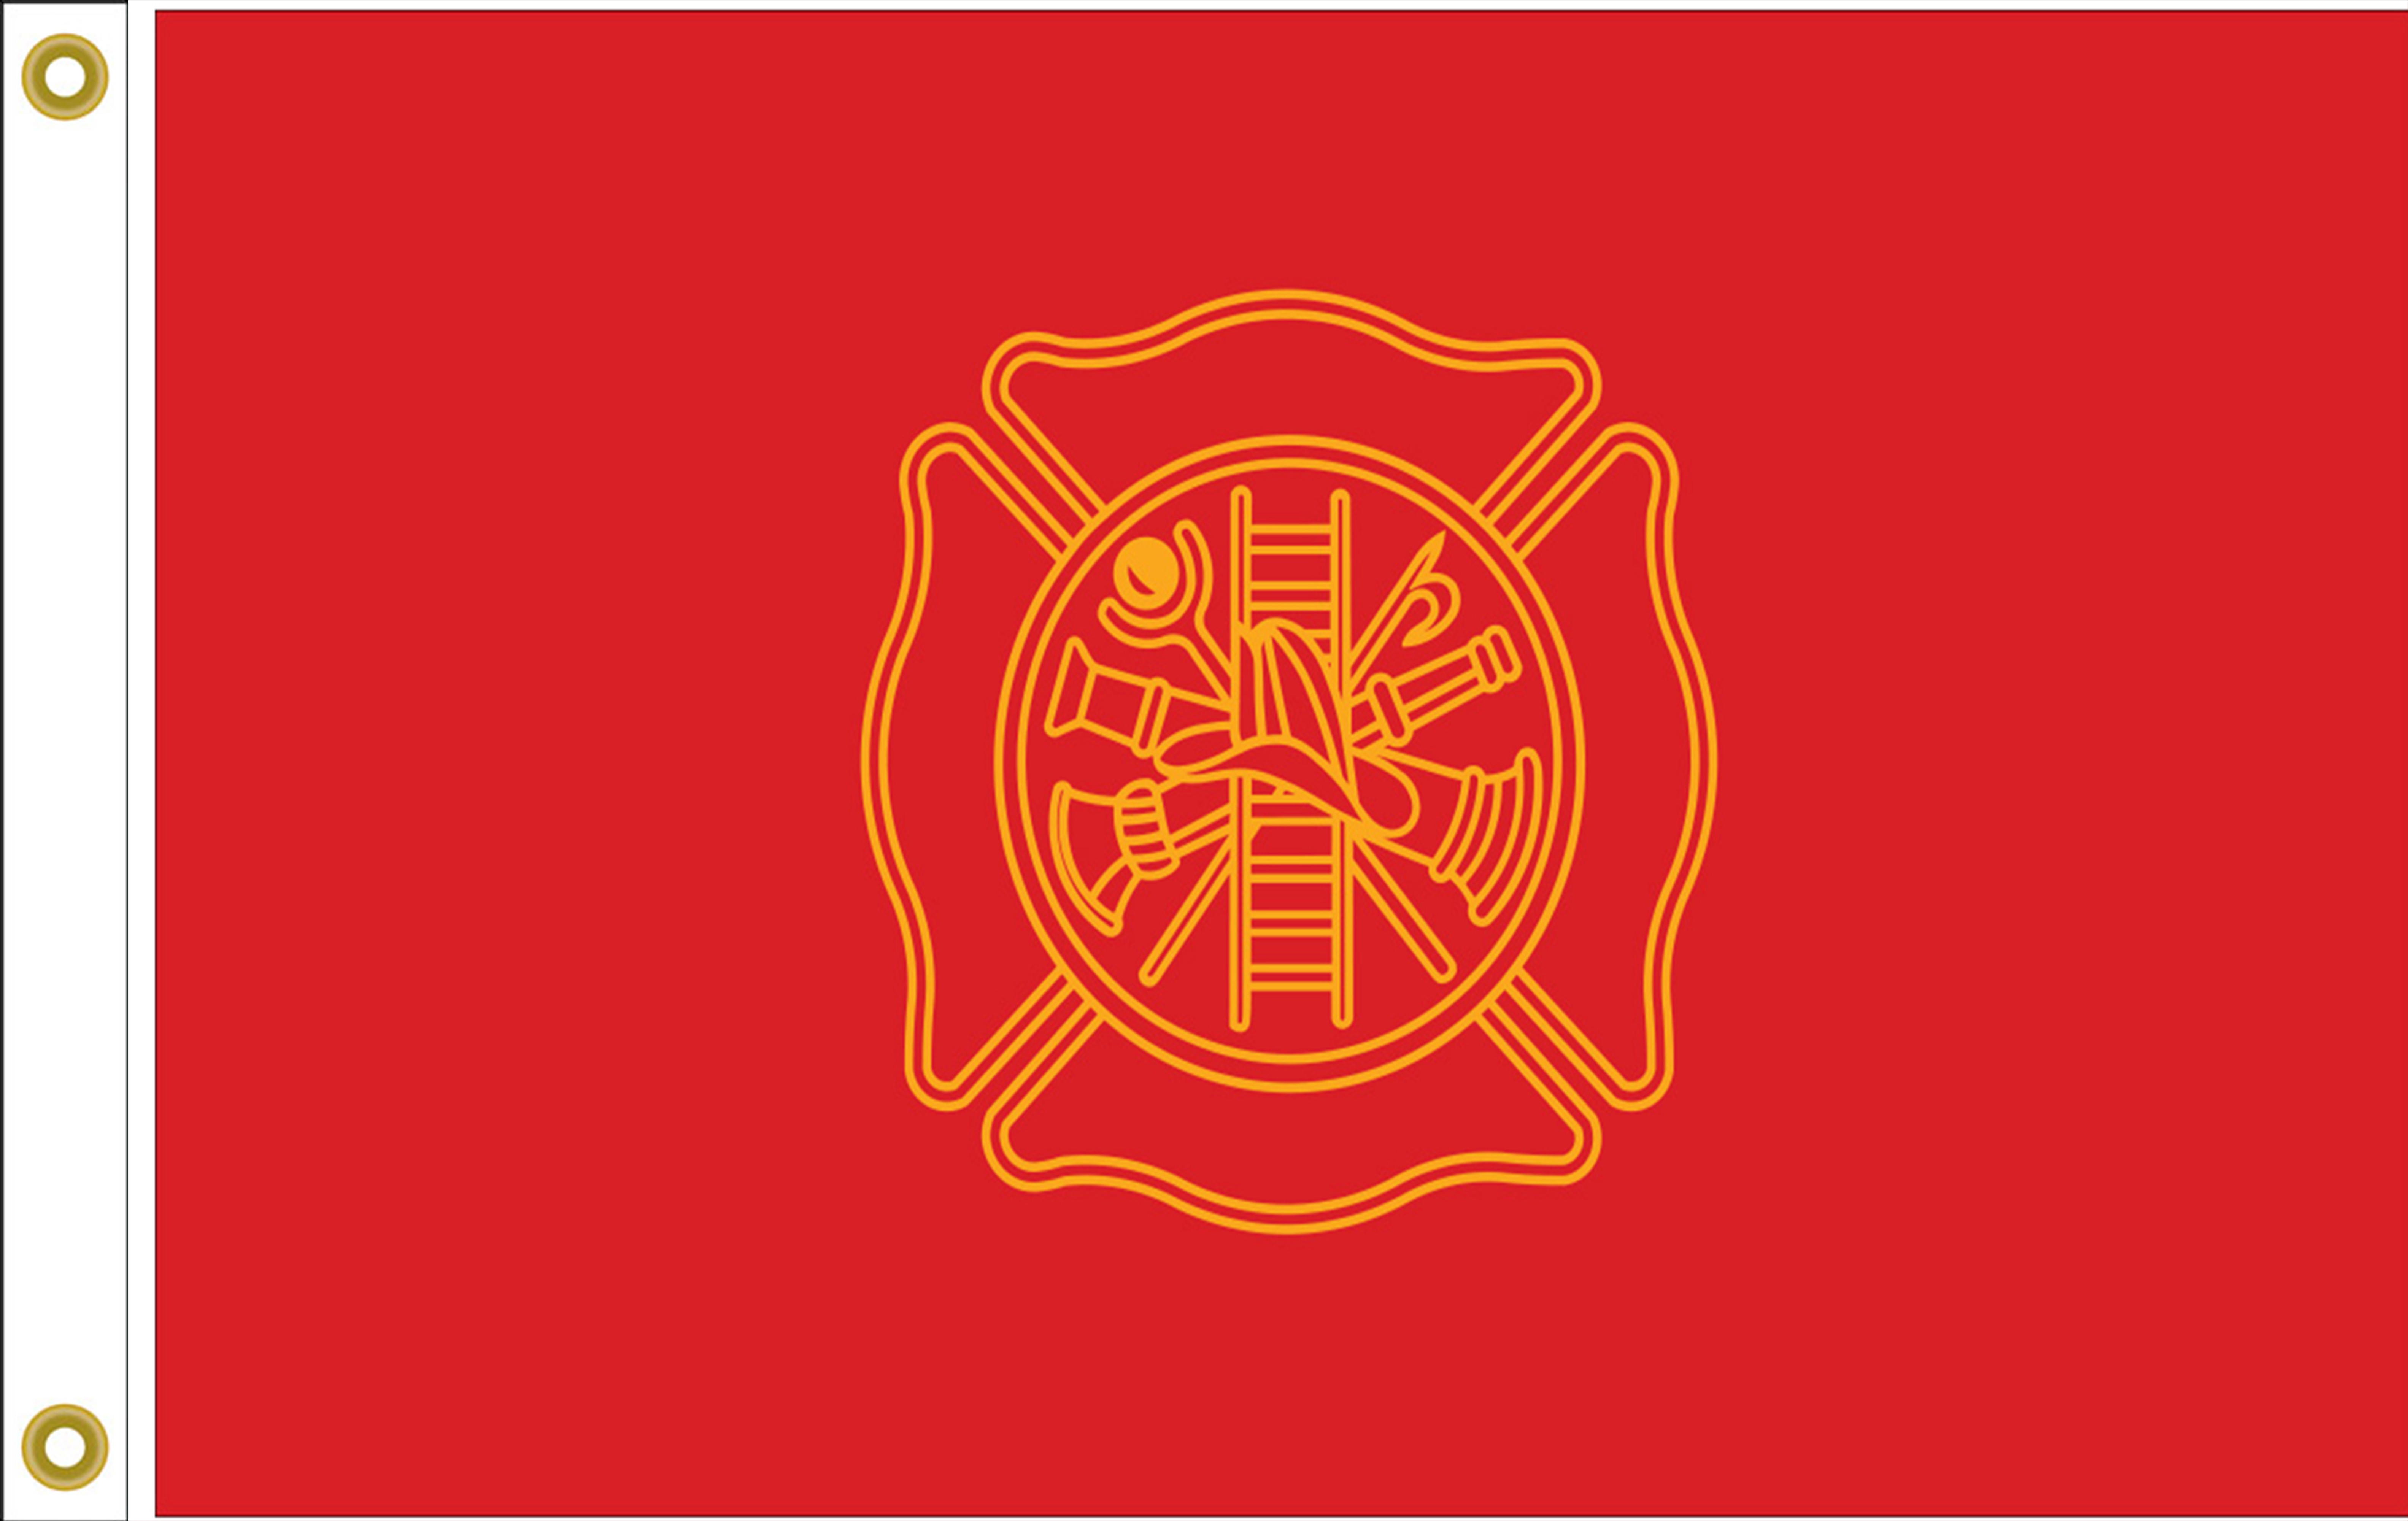 Firefighters Flags